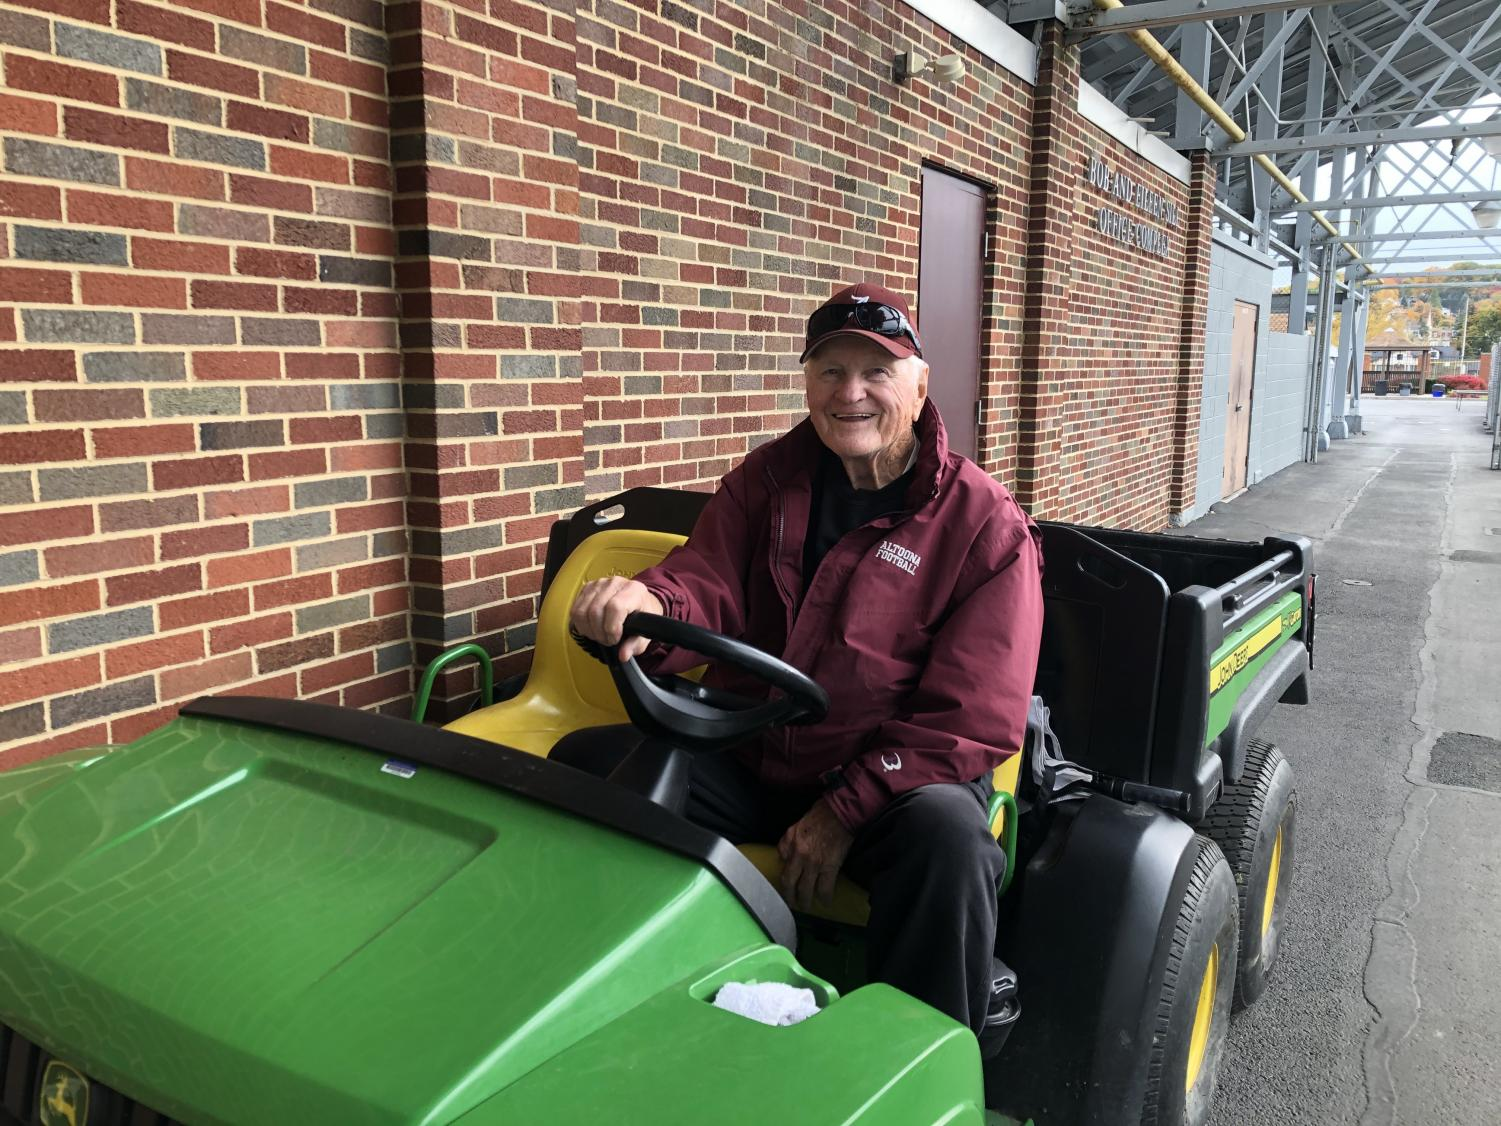 Smile! Sammy Miller poses in his iconic green Gator. Miller rides his cart to help set up practices.